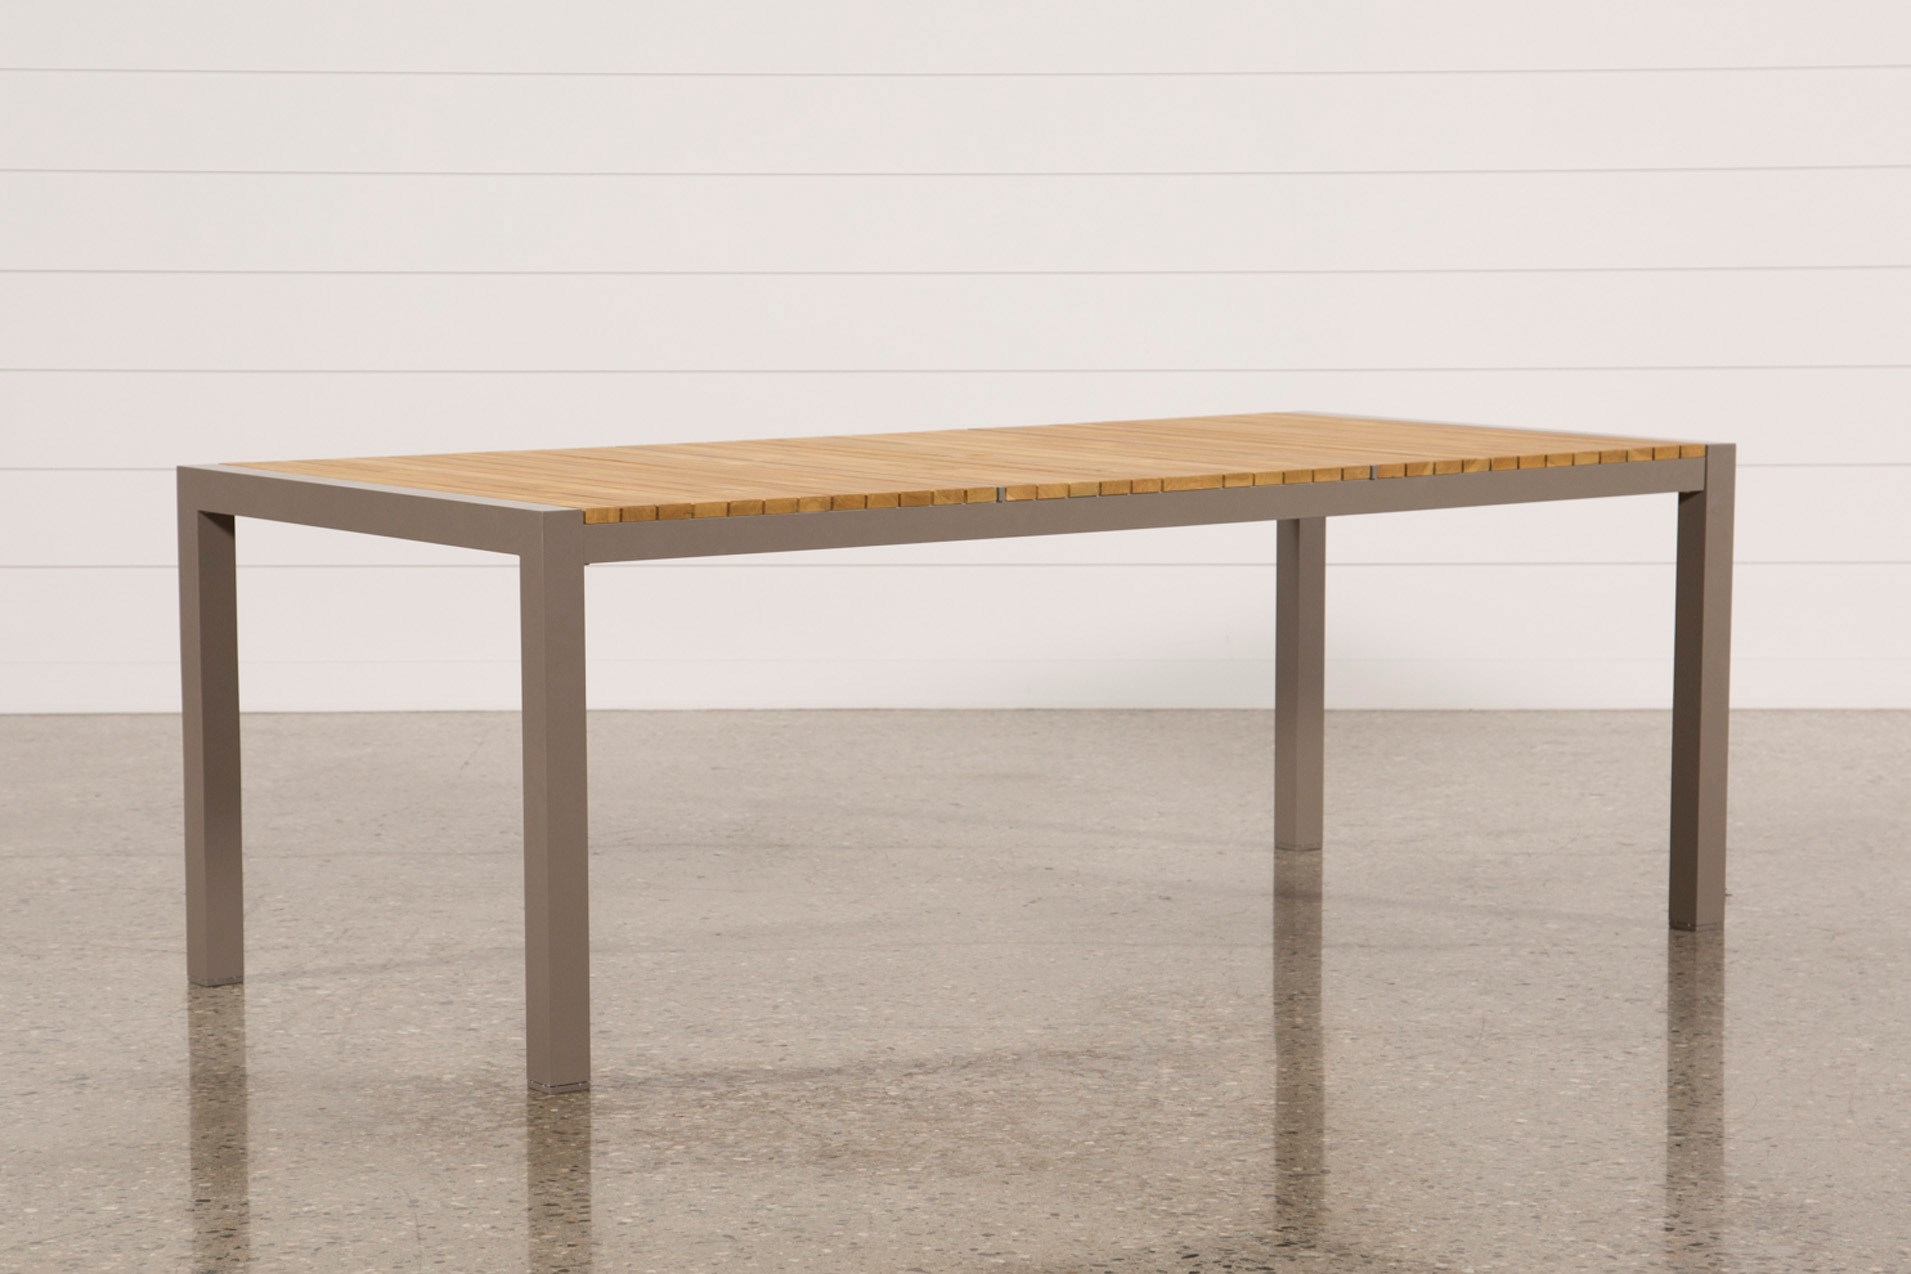 Outdoor brasilia teak dining table qty 1 has been successfully added to your cart